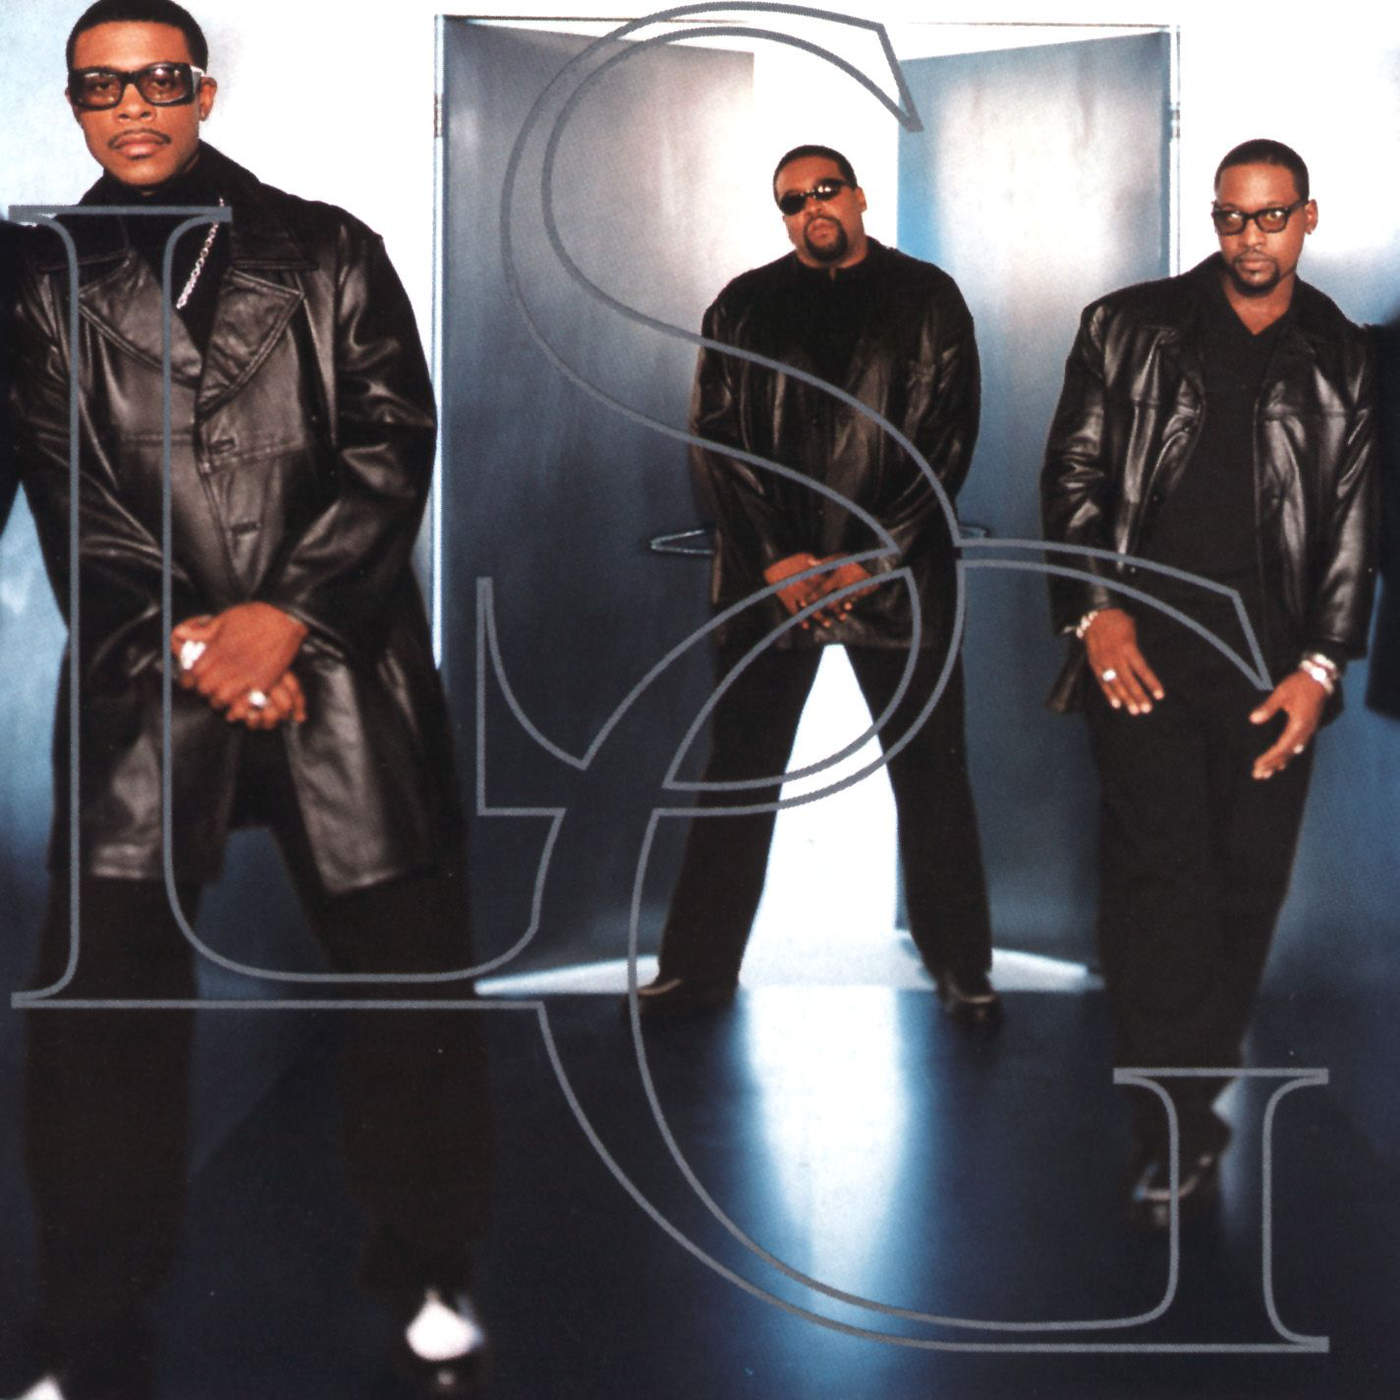 Art for Curious (feat. Ll Cool J, Busta Rhymes & Lil' Kim) by LSG